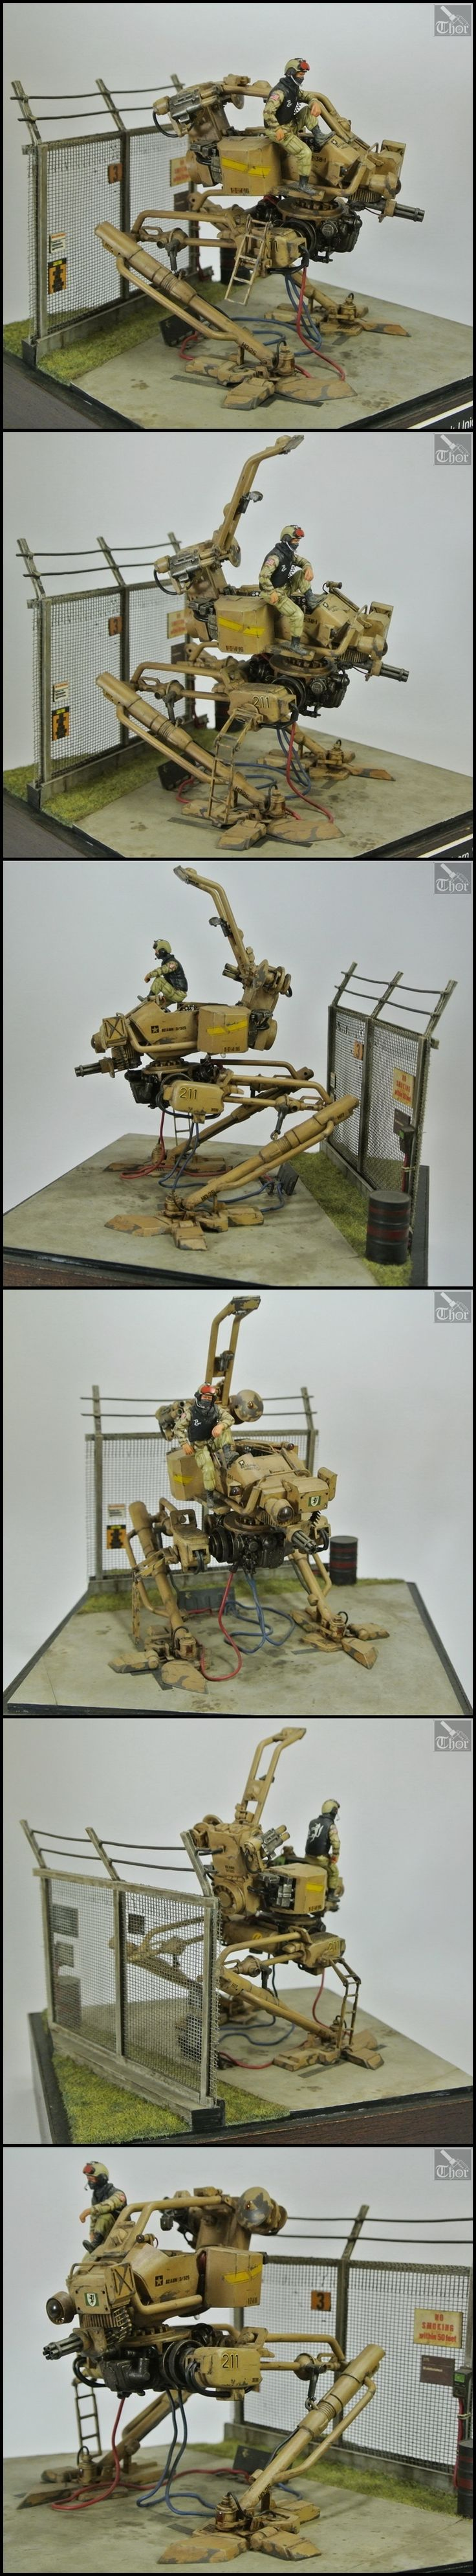 CoolMiniOrNot - AFR-921 Valiant Walker by Thor-Modelling